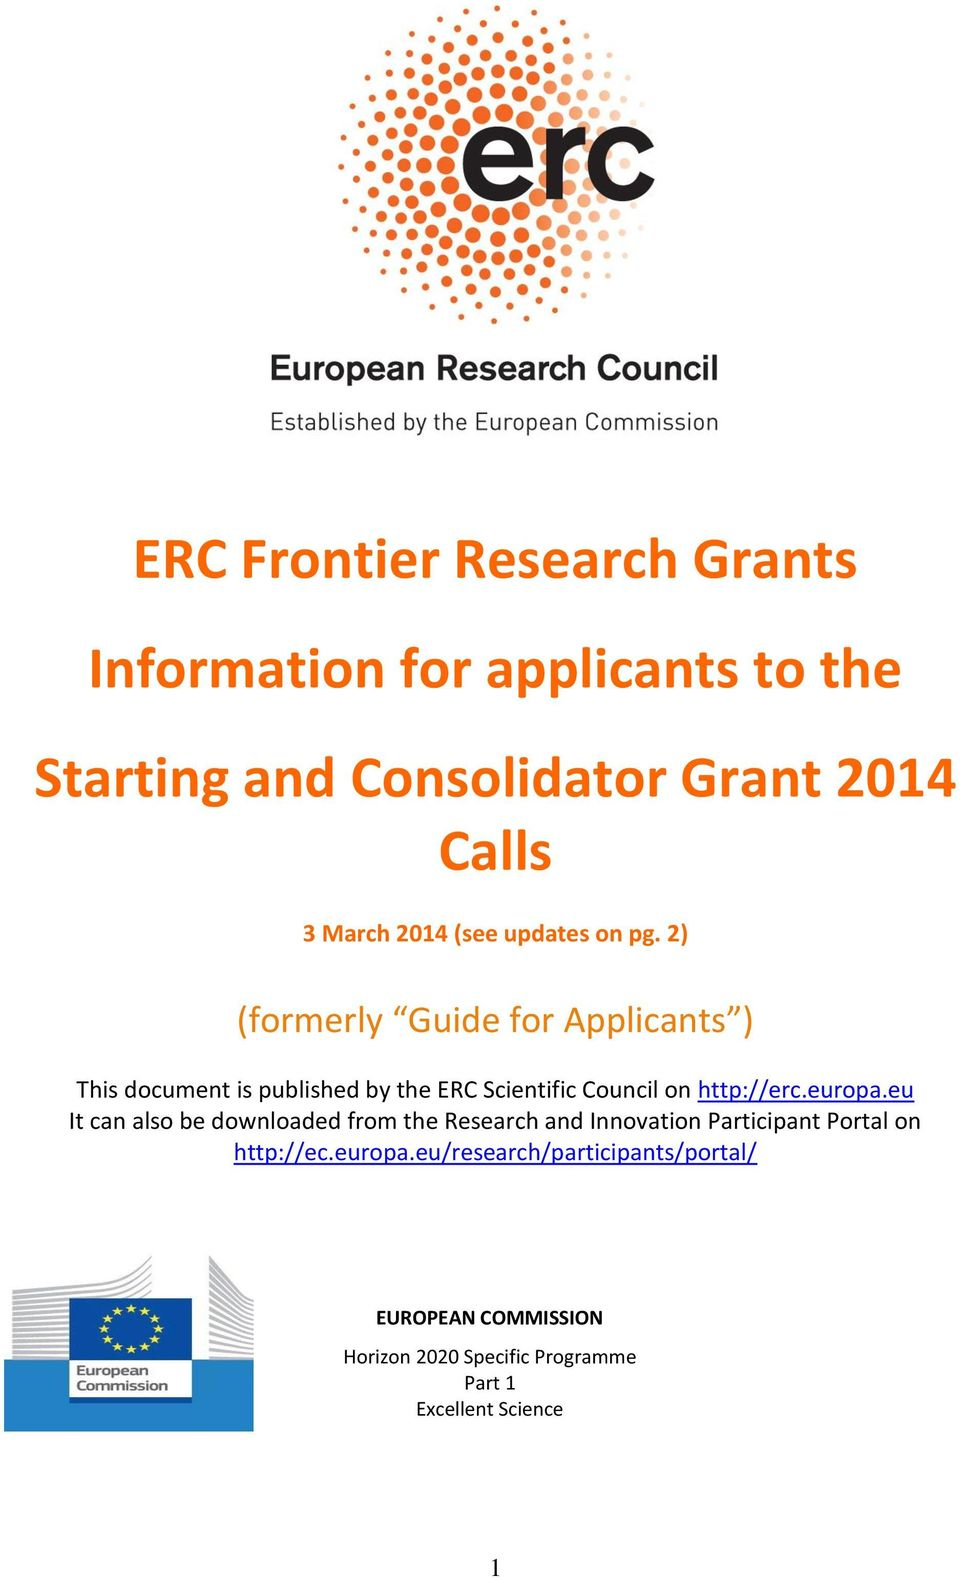 2) (formerly Guide for Applicants ) This document is published by the ERC Scientific Council on http://erc.europa.